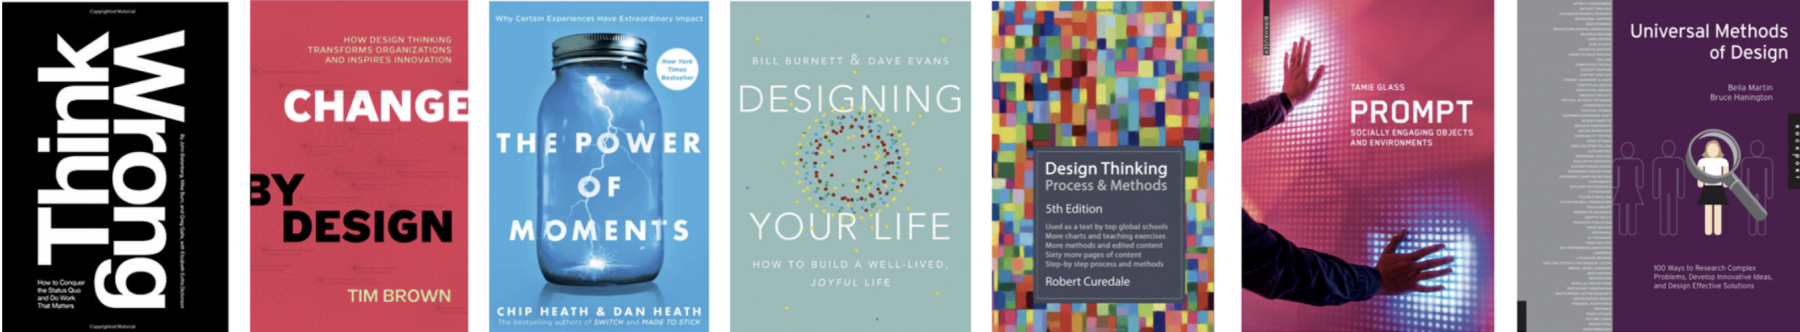 photo collage of Design Thinking book covers